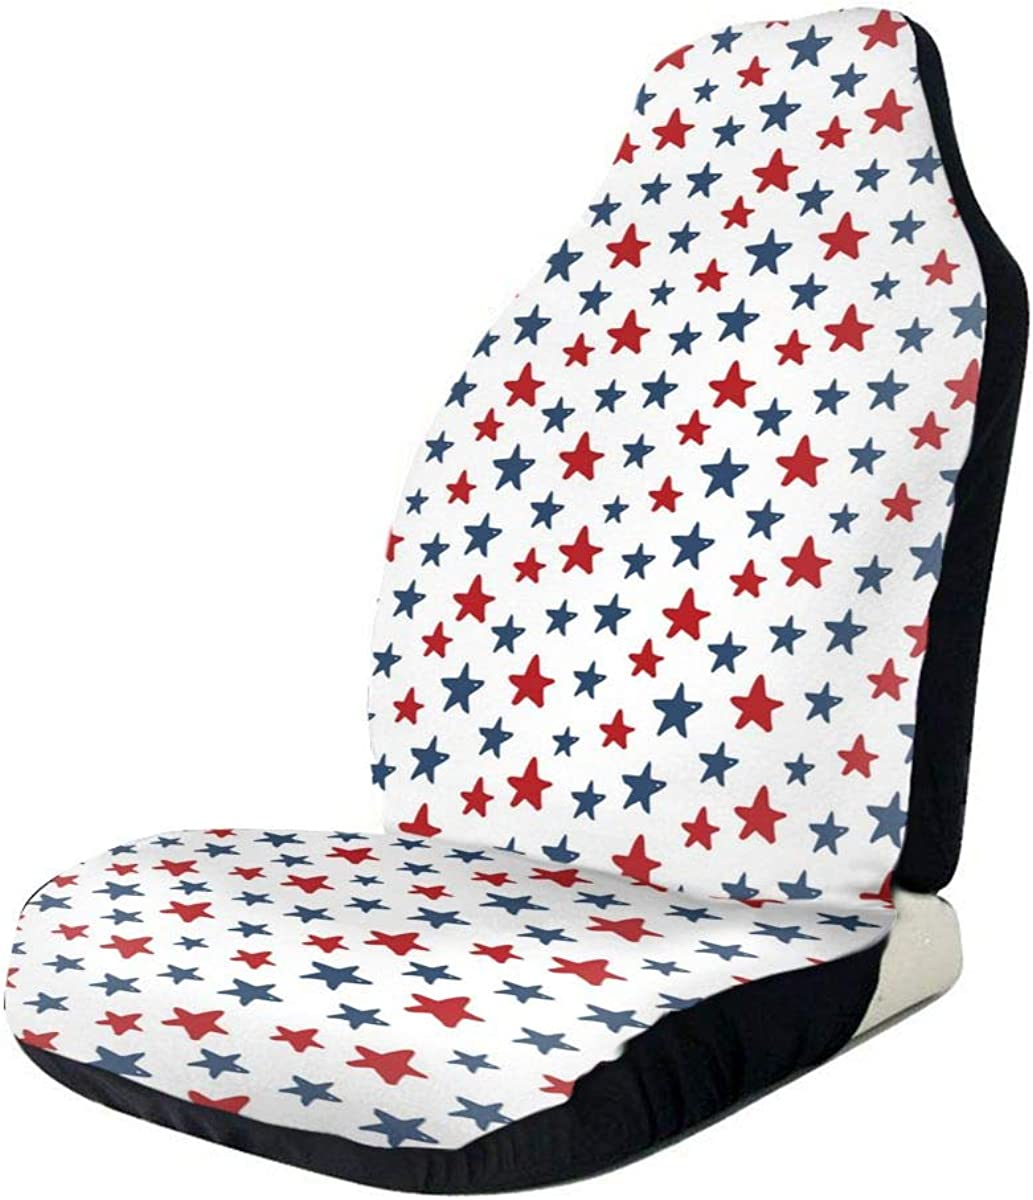 Car Seat Covers Red Popularity Blue Star Blanket With Nippon regular agency U Saddle Elastic